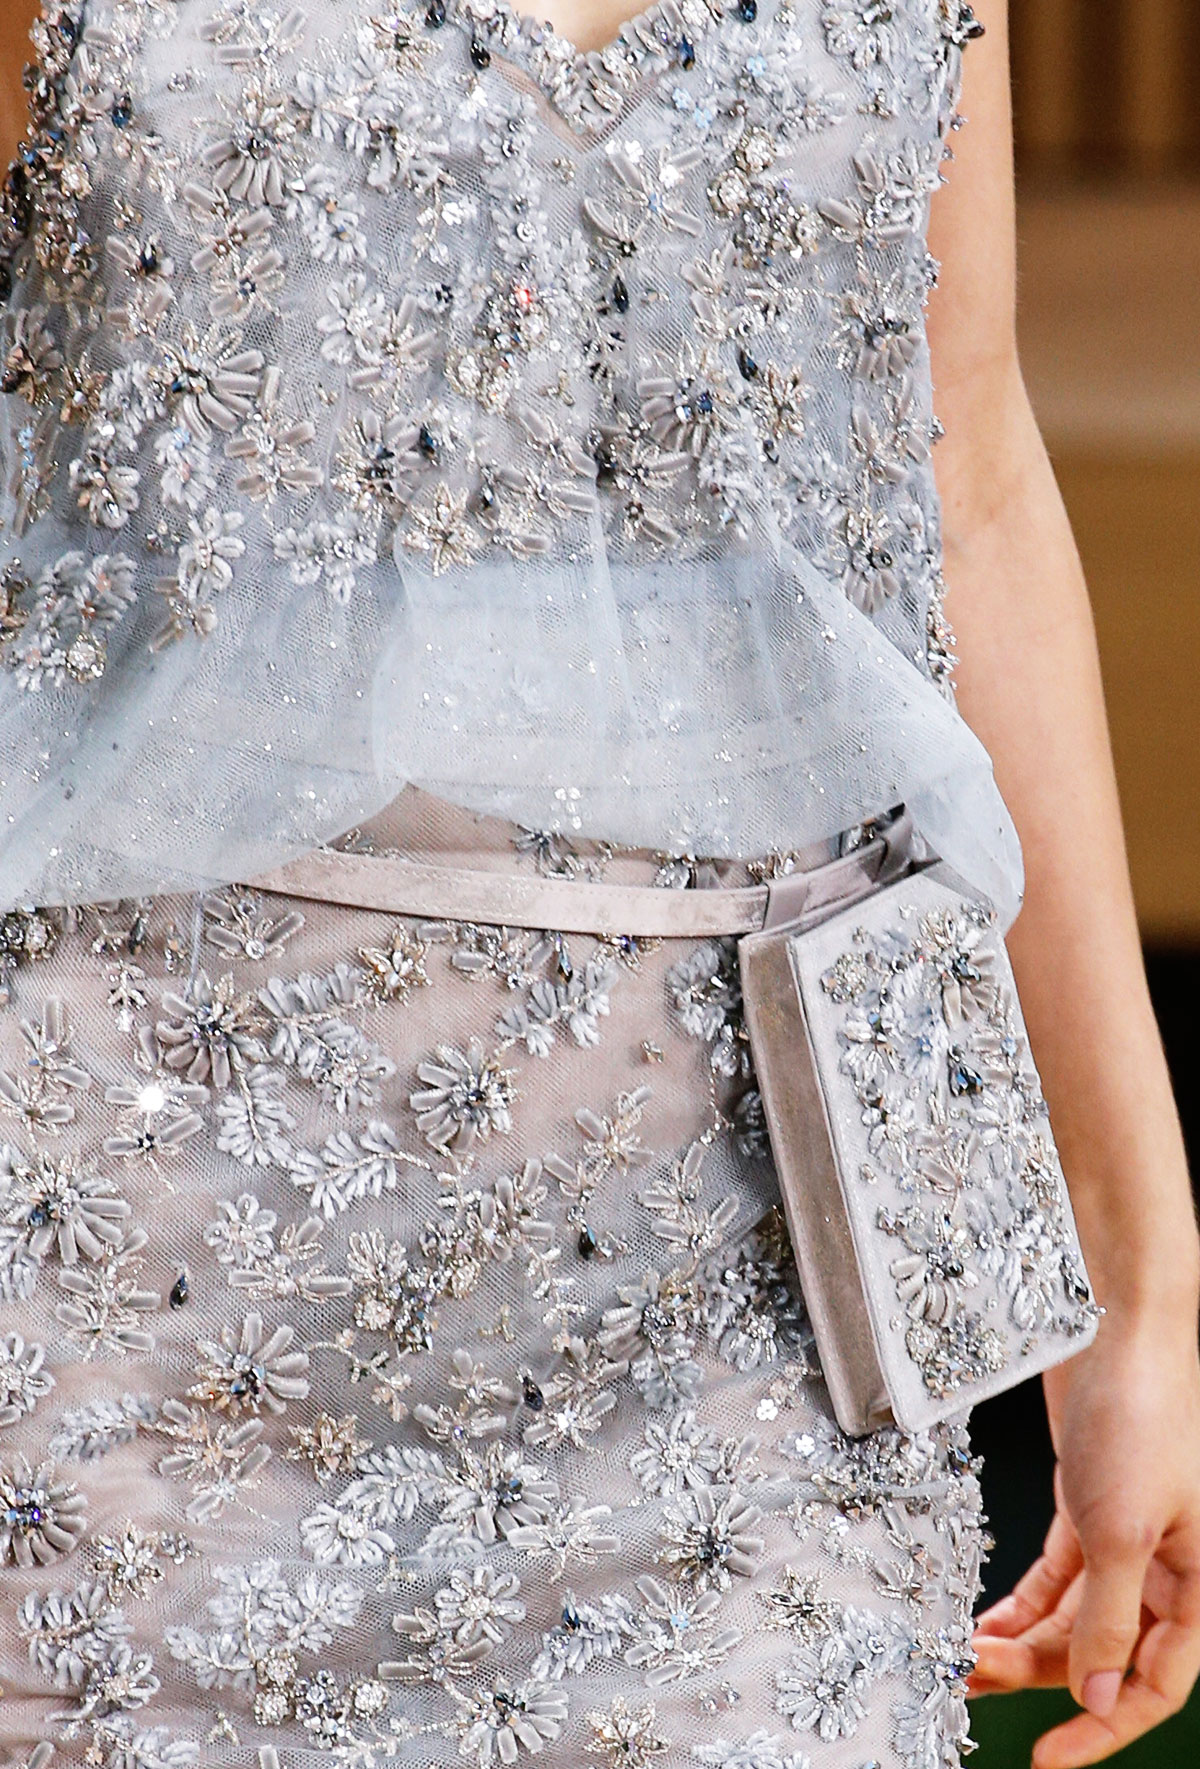 Chanel Spring 2016 Haute Couture embroidered tulle